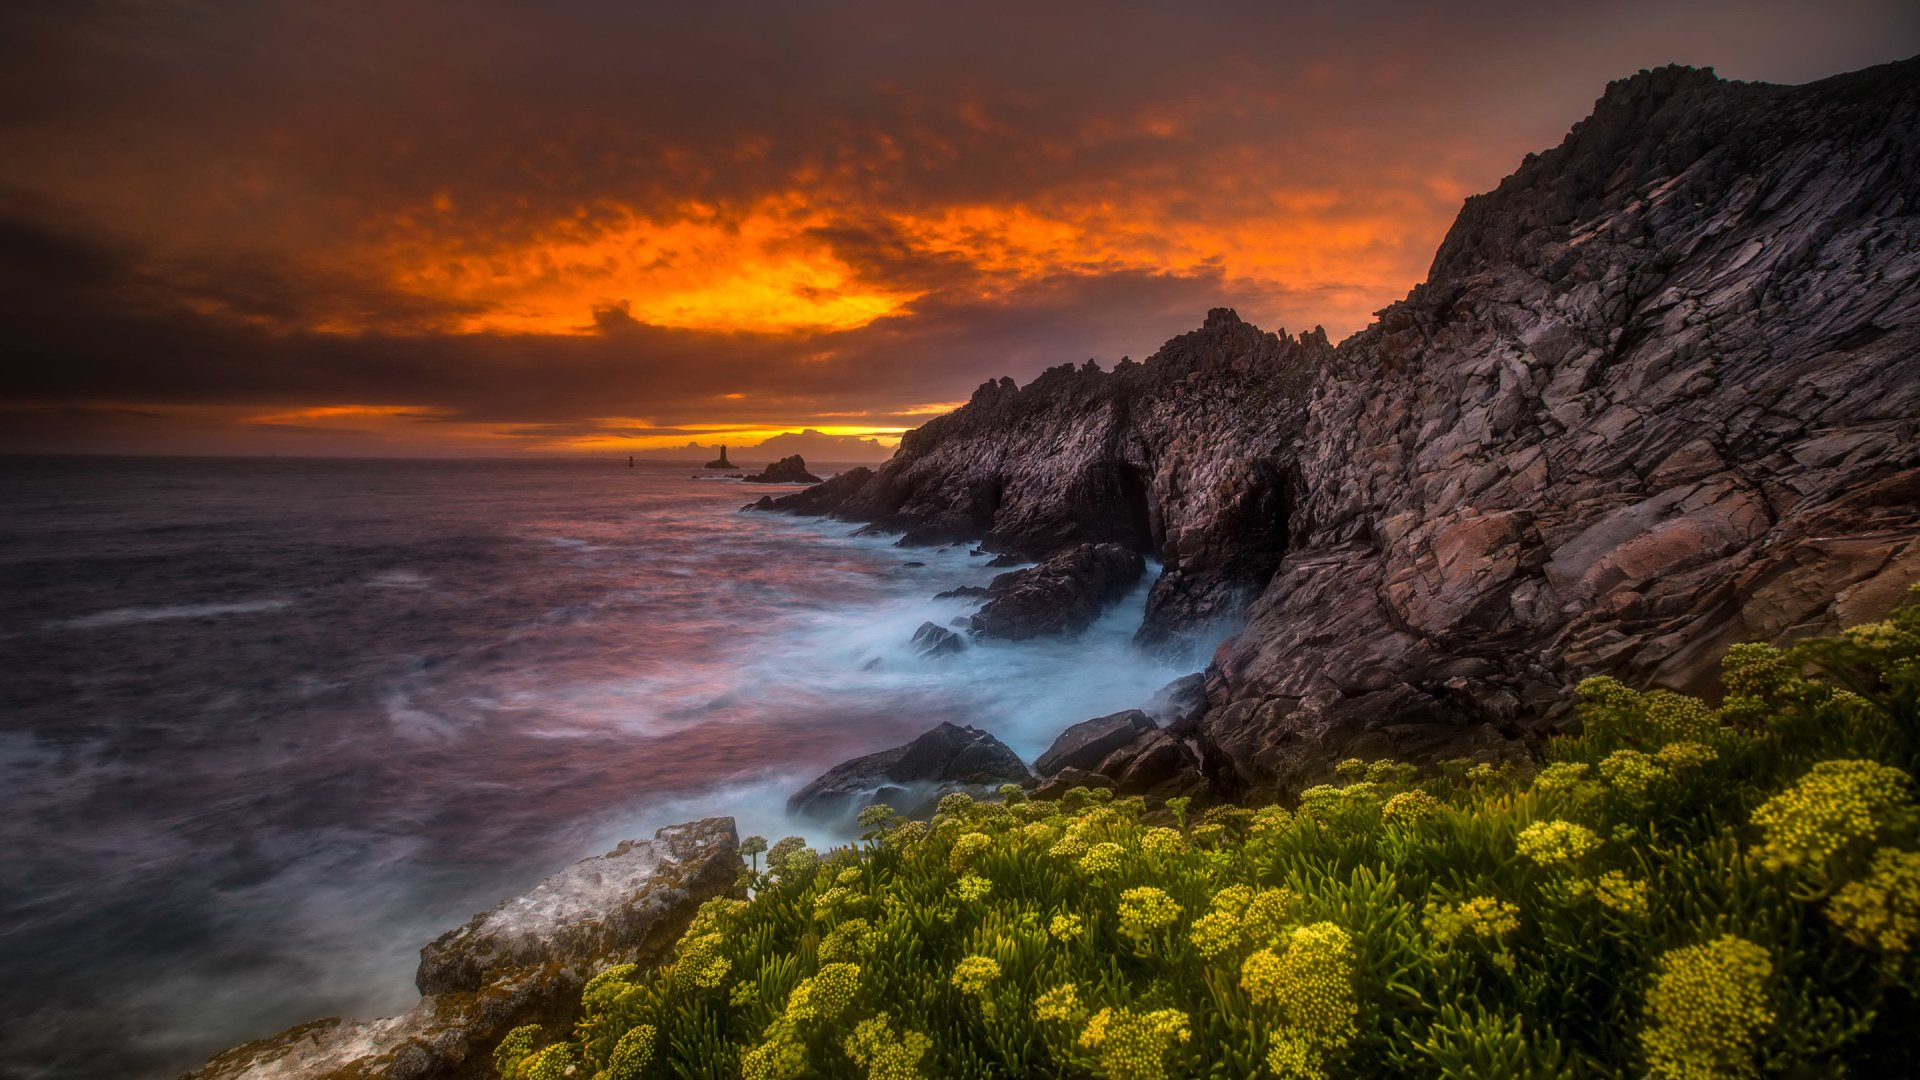 Flowers on the coastline at sunset hd wallpaper background image 2880x1620 id 734044 - 2880x1620 wallpaper ...